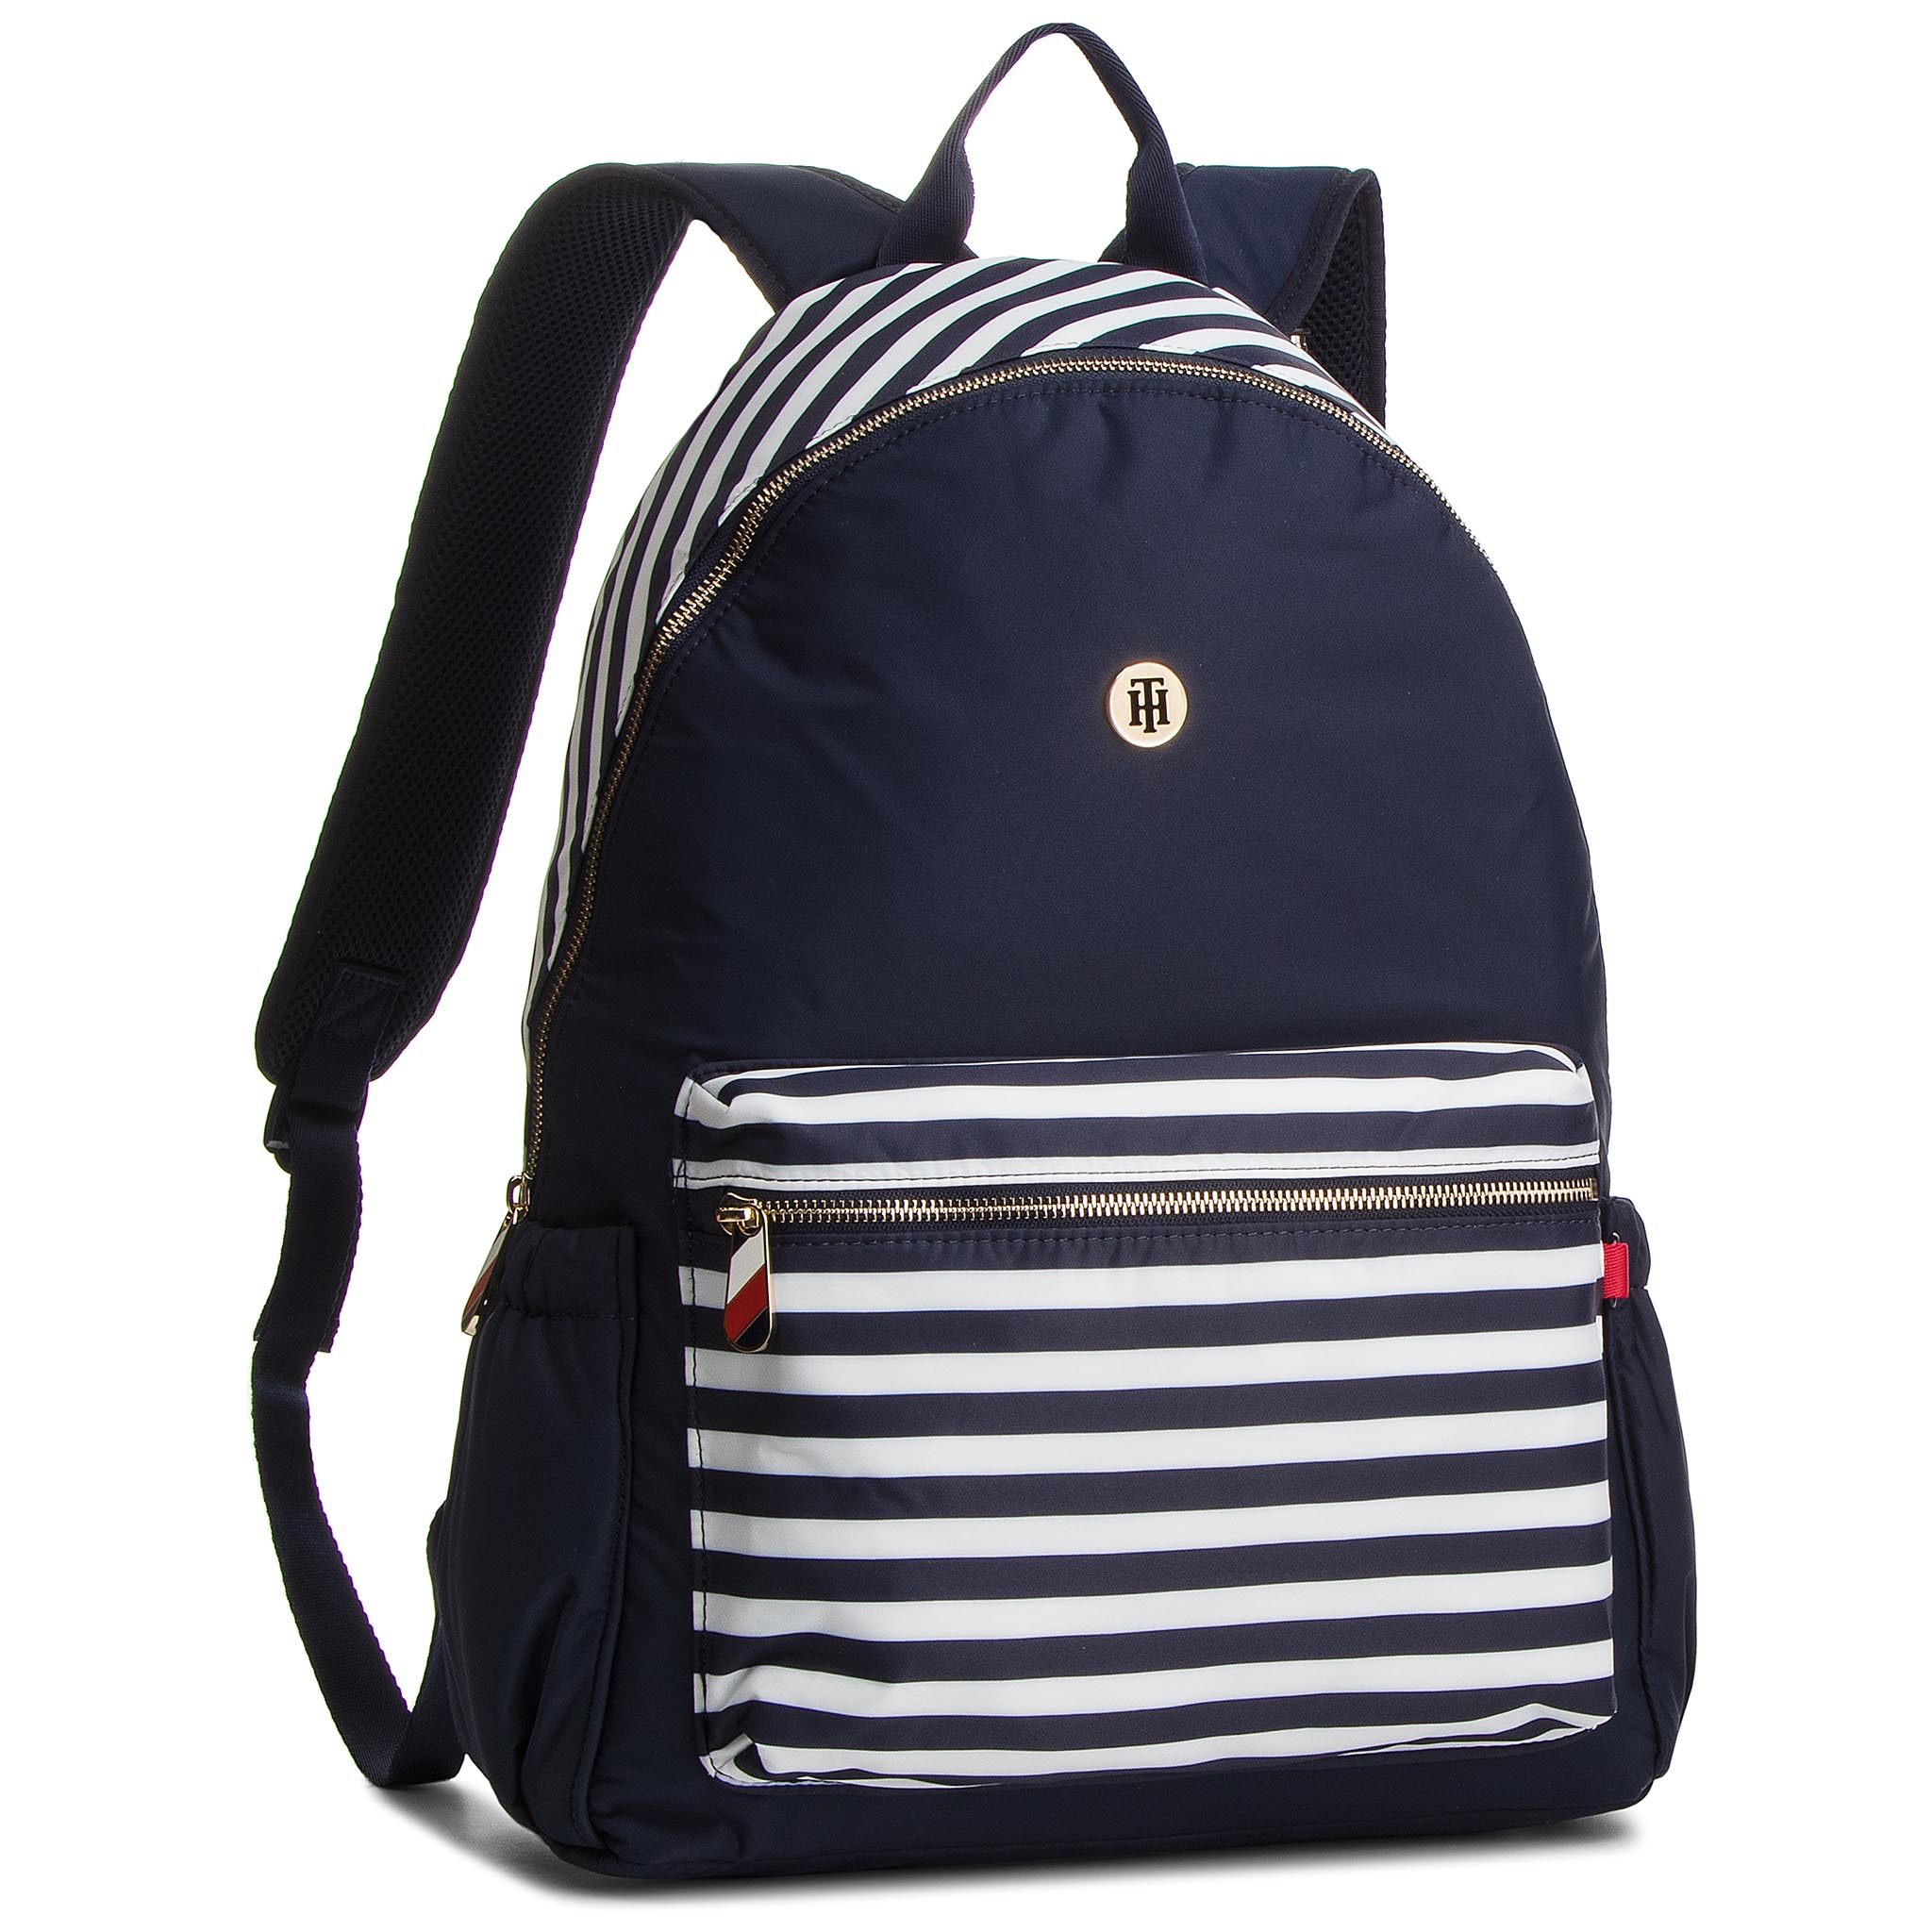 Hátizsák TOMMY HILFIGER - Th Baby Backpack AU0AU00419 901 - Glami.hu 9a89f85597